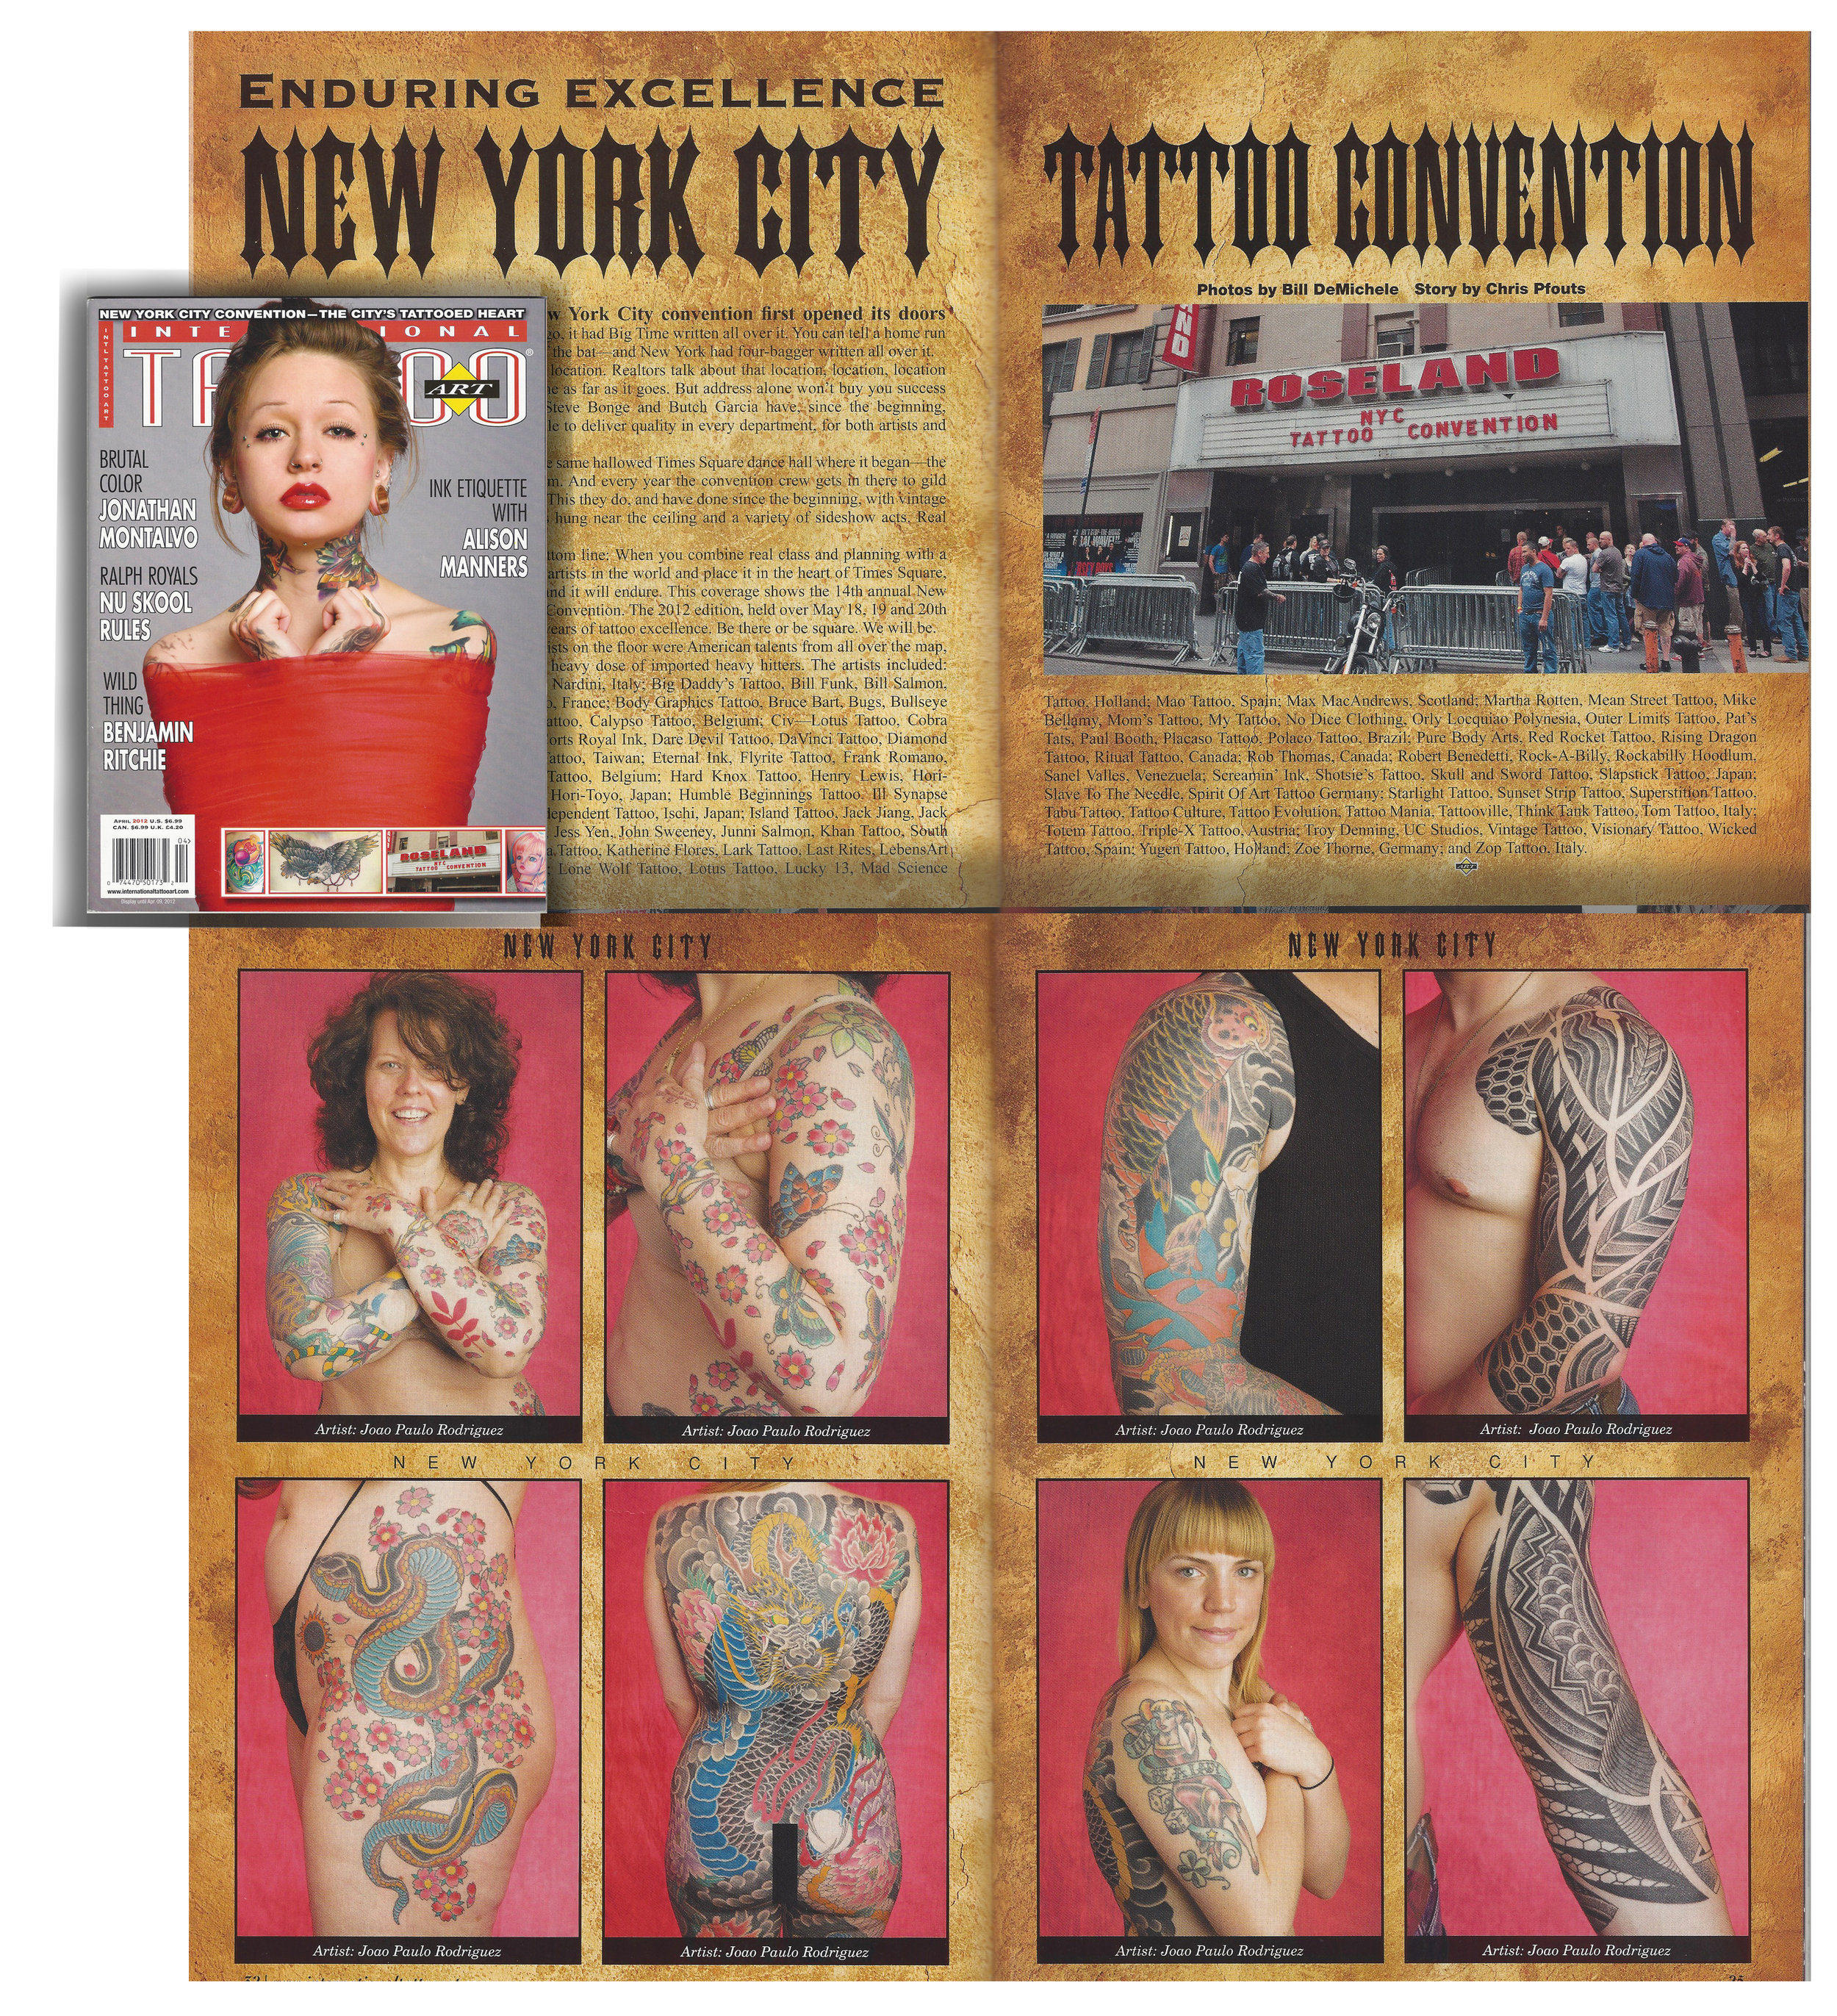 Featured at an American International Tattoo Art Magazine with the NYC  Tattoo Convention 2011 which João Paulo Rodrigues won 2nd place Best Sleeve Award.